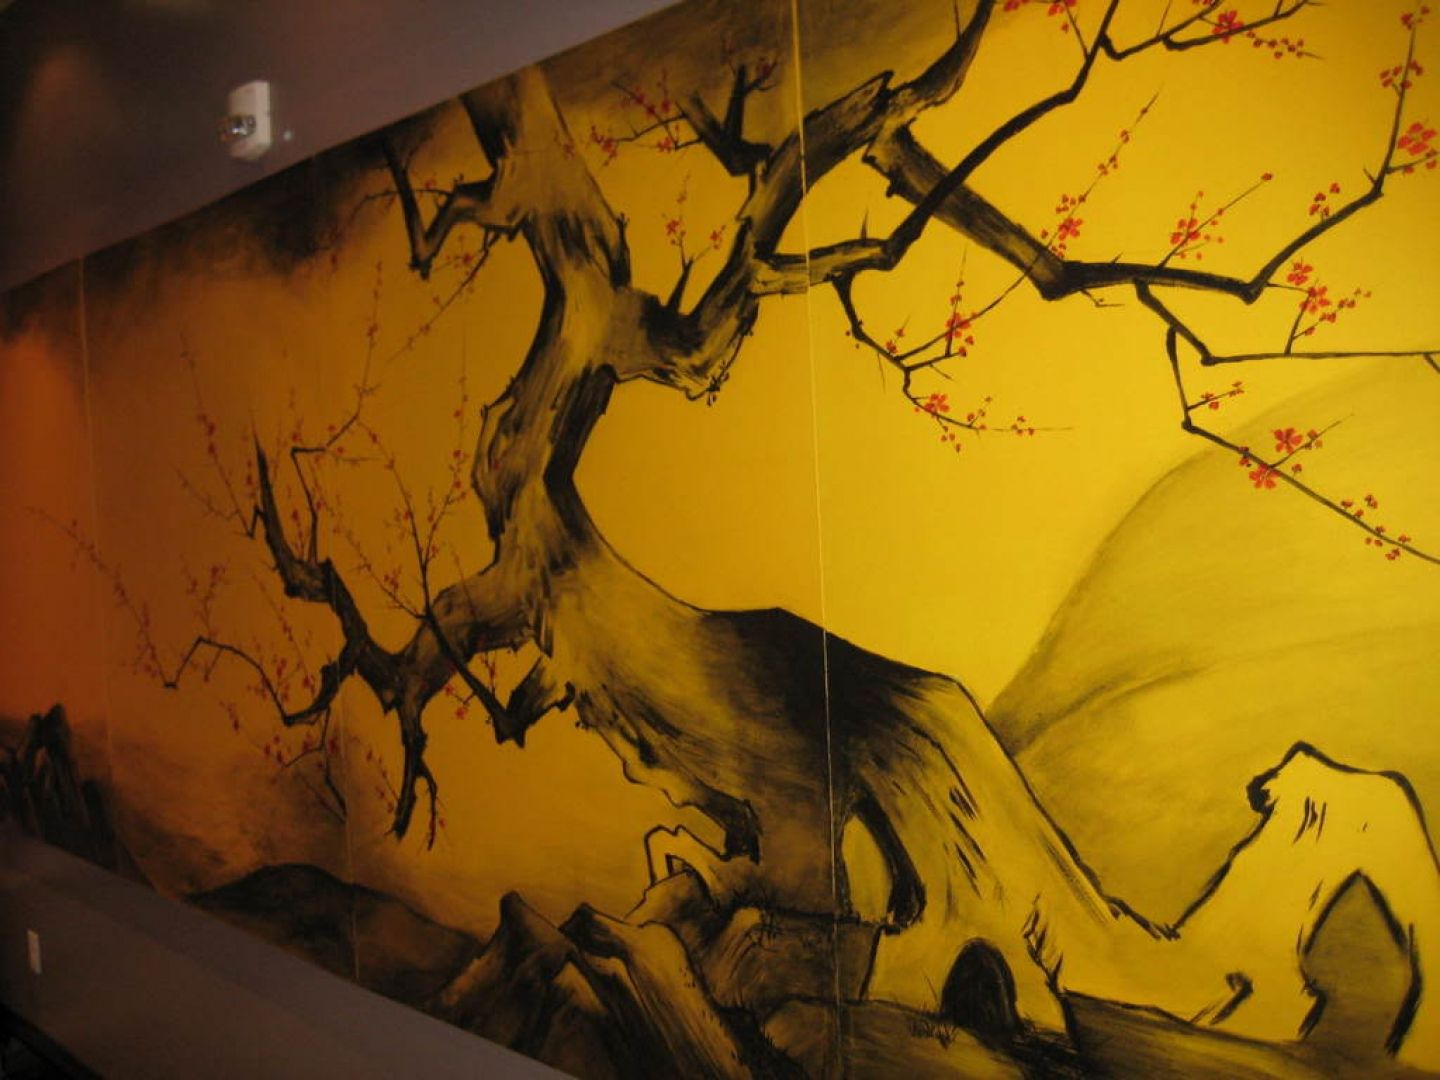 Hd wall painting tips wallpaper asian mural in restaurant for Mural painting designs